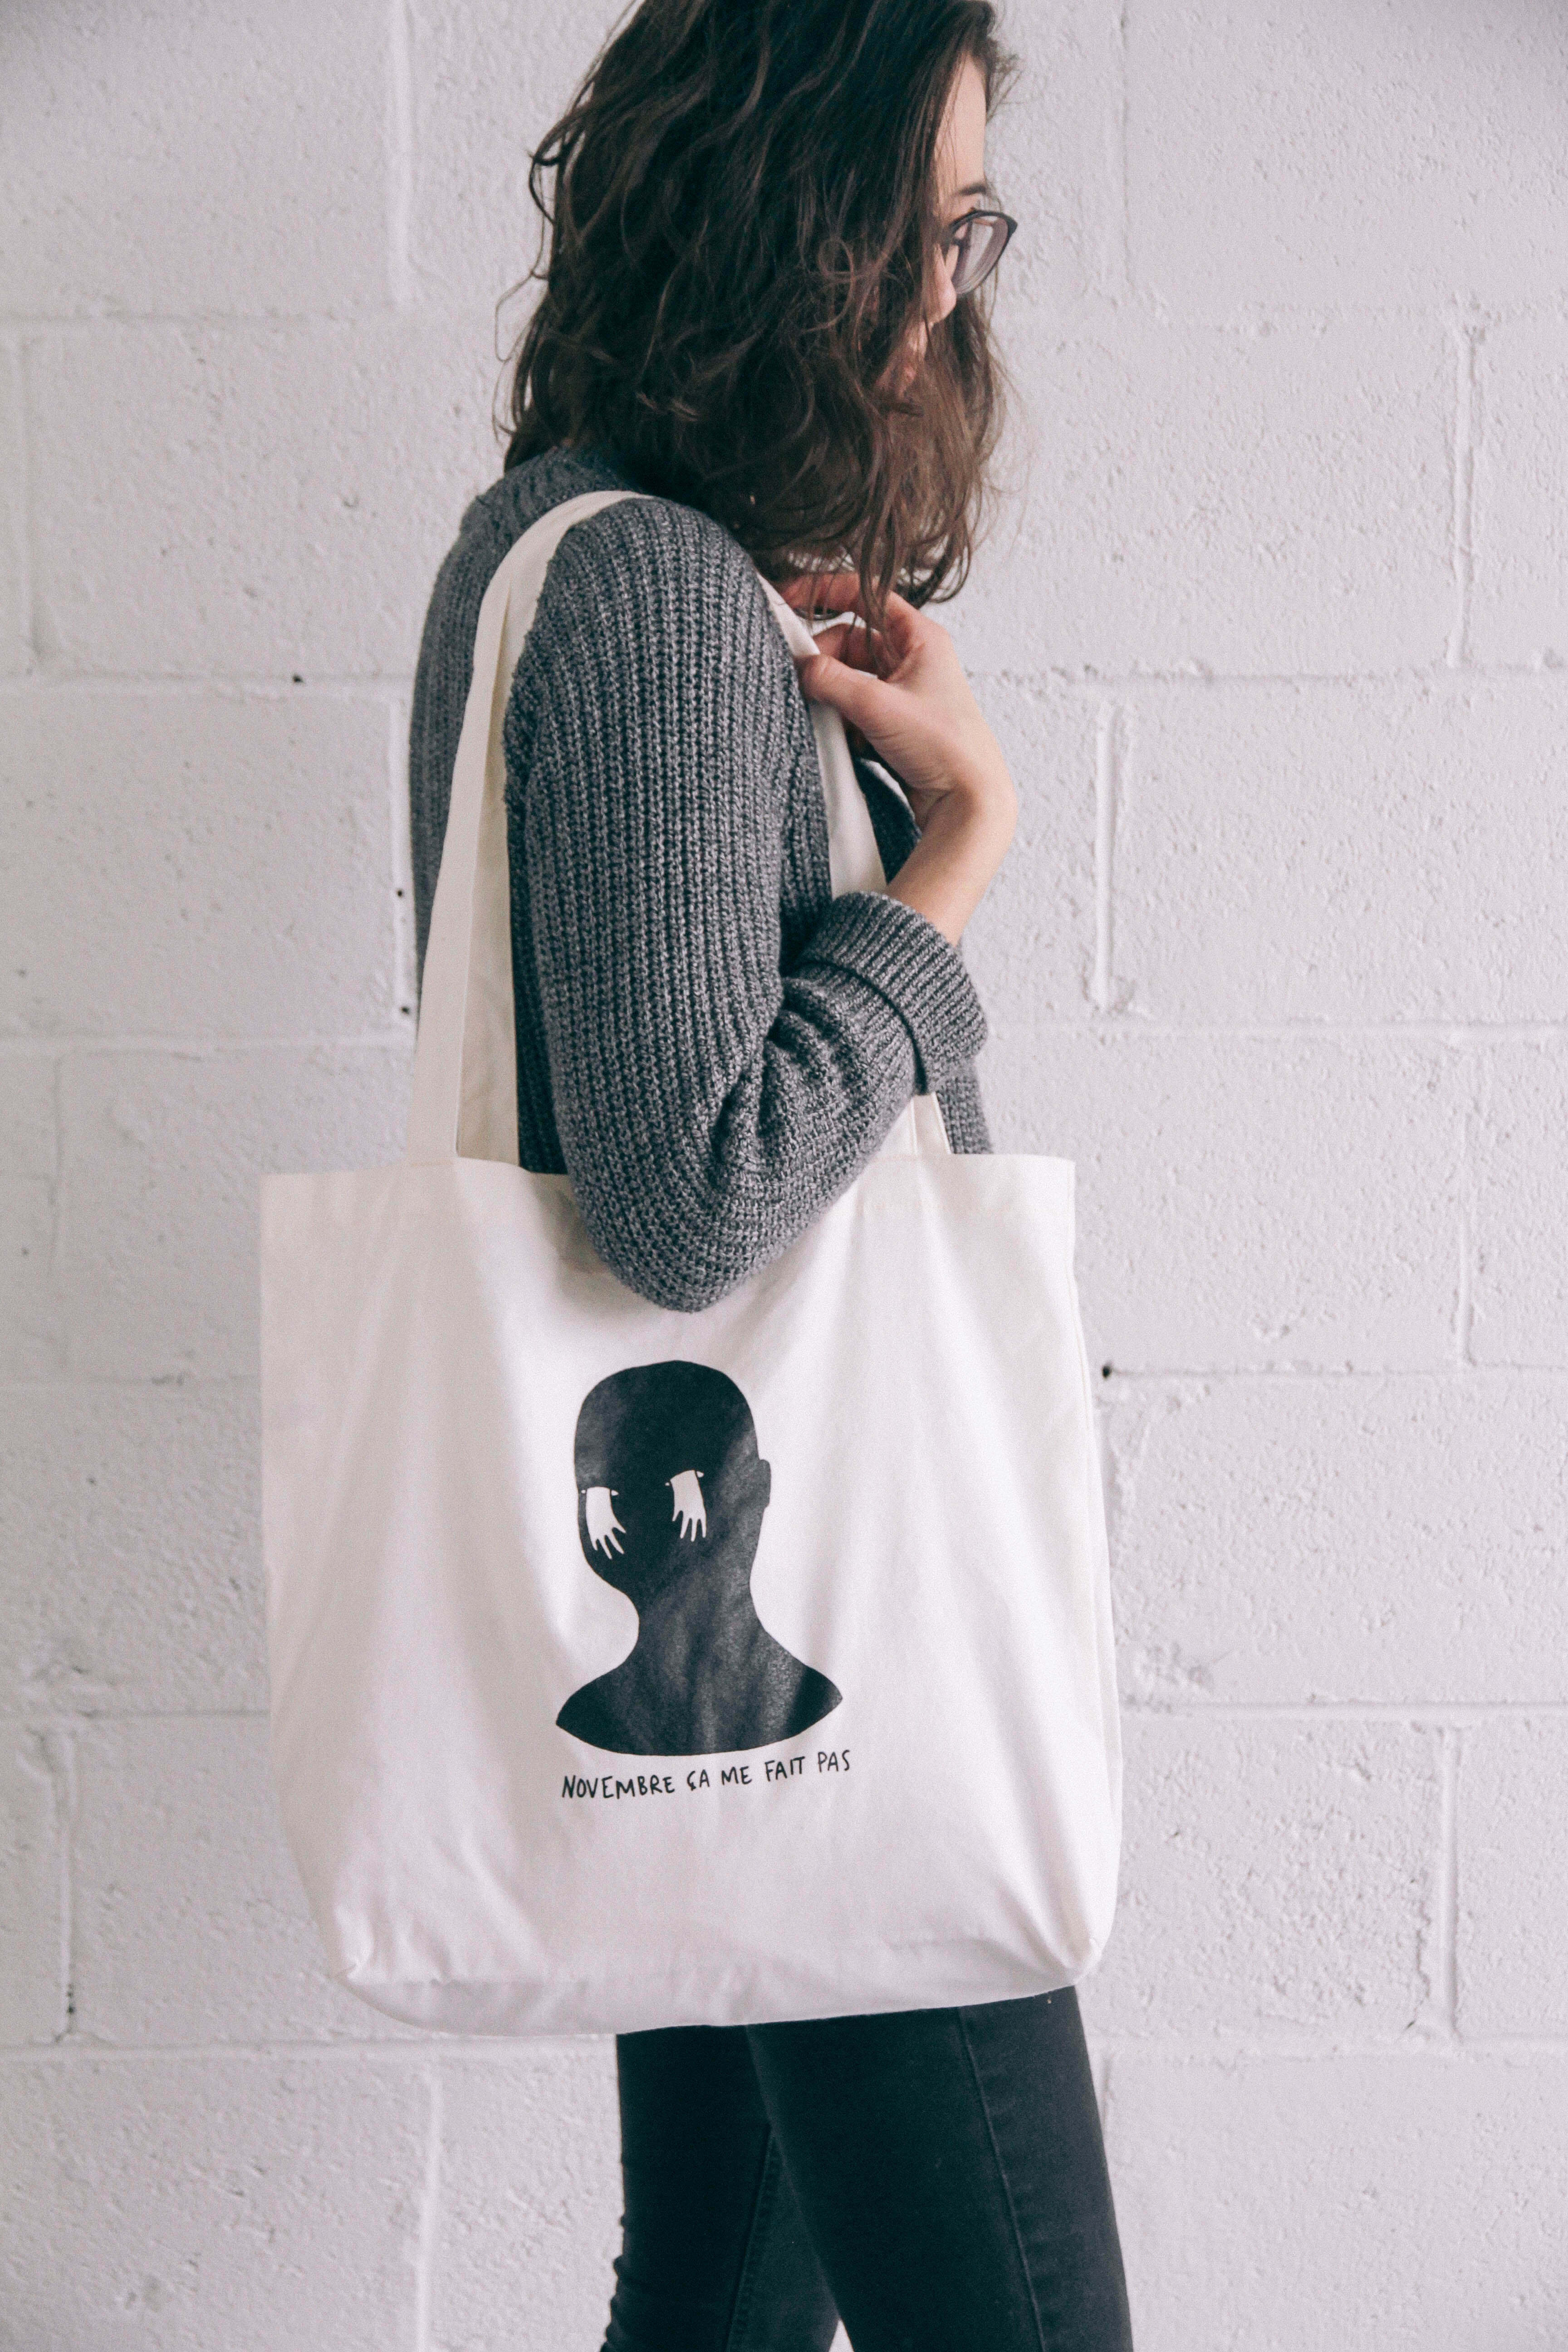 Ana-e-shop anaroy illustration eshop ecommerce portrait girl boutique en ligne namaste caliss breather brunette lentement plants lover white tee tshirt fashion local montreal_ tote bag november girl